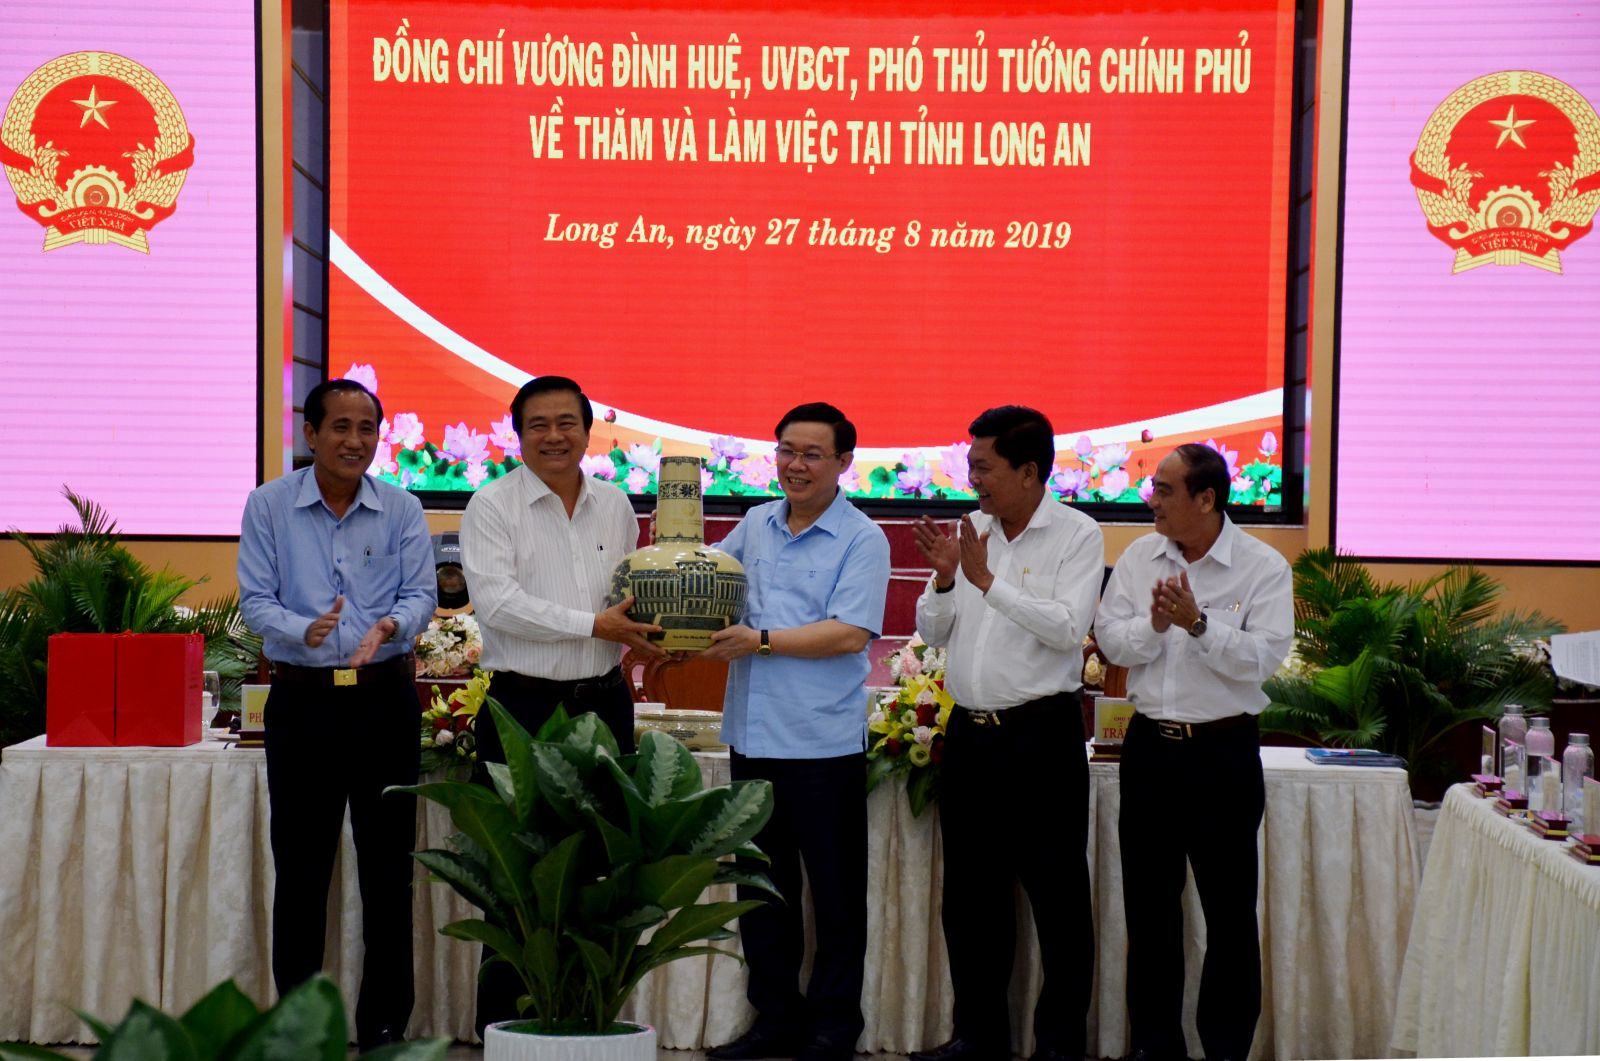 Deputy PM - Vuong Dinh Hue presents a souvenir gift to the leader of Long An province